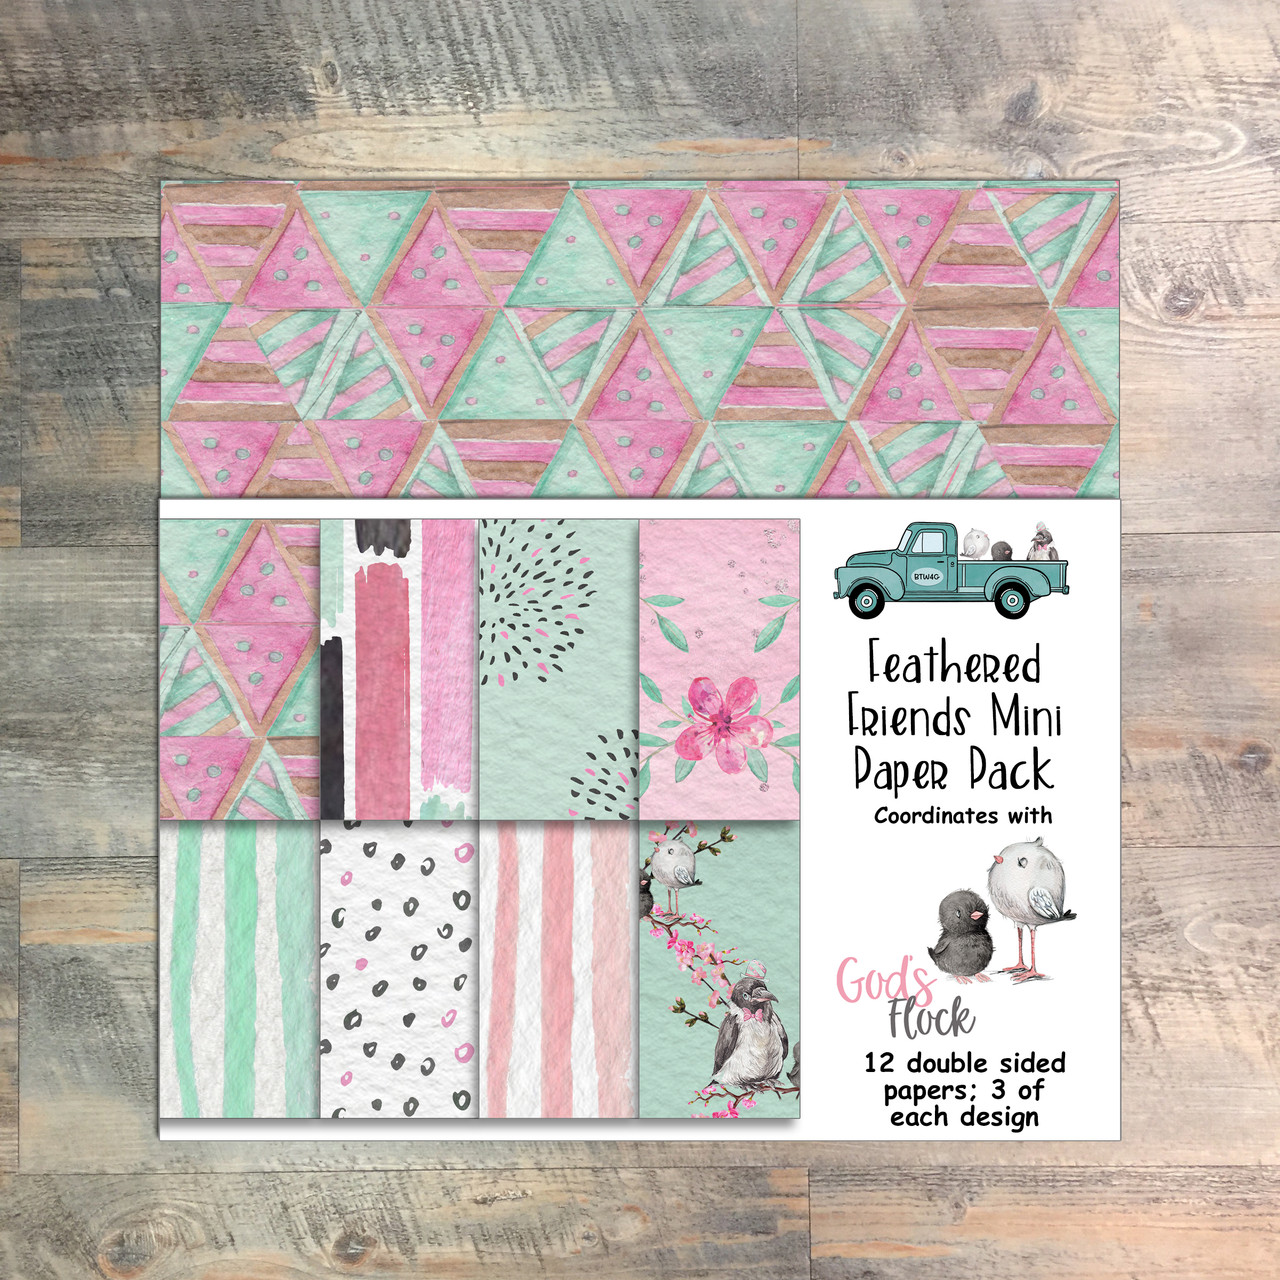 God's Flock - Feathered Friends Mini Paper Collection - 12 Double Sided 6x6 Papers